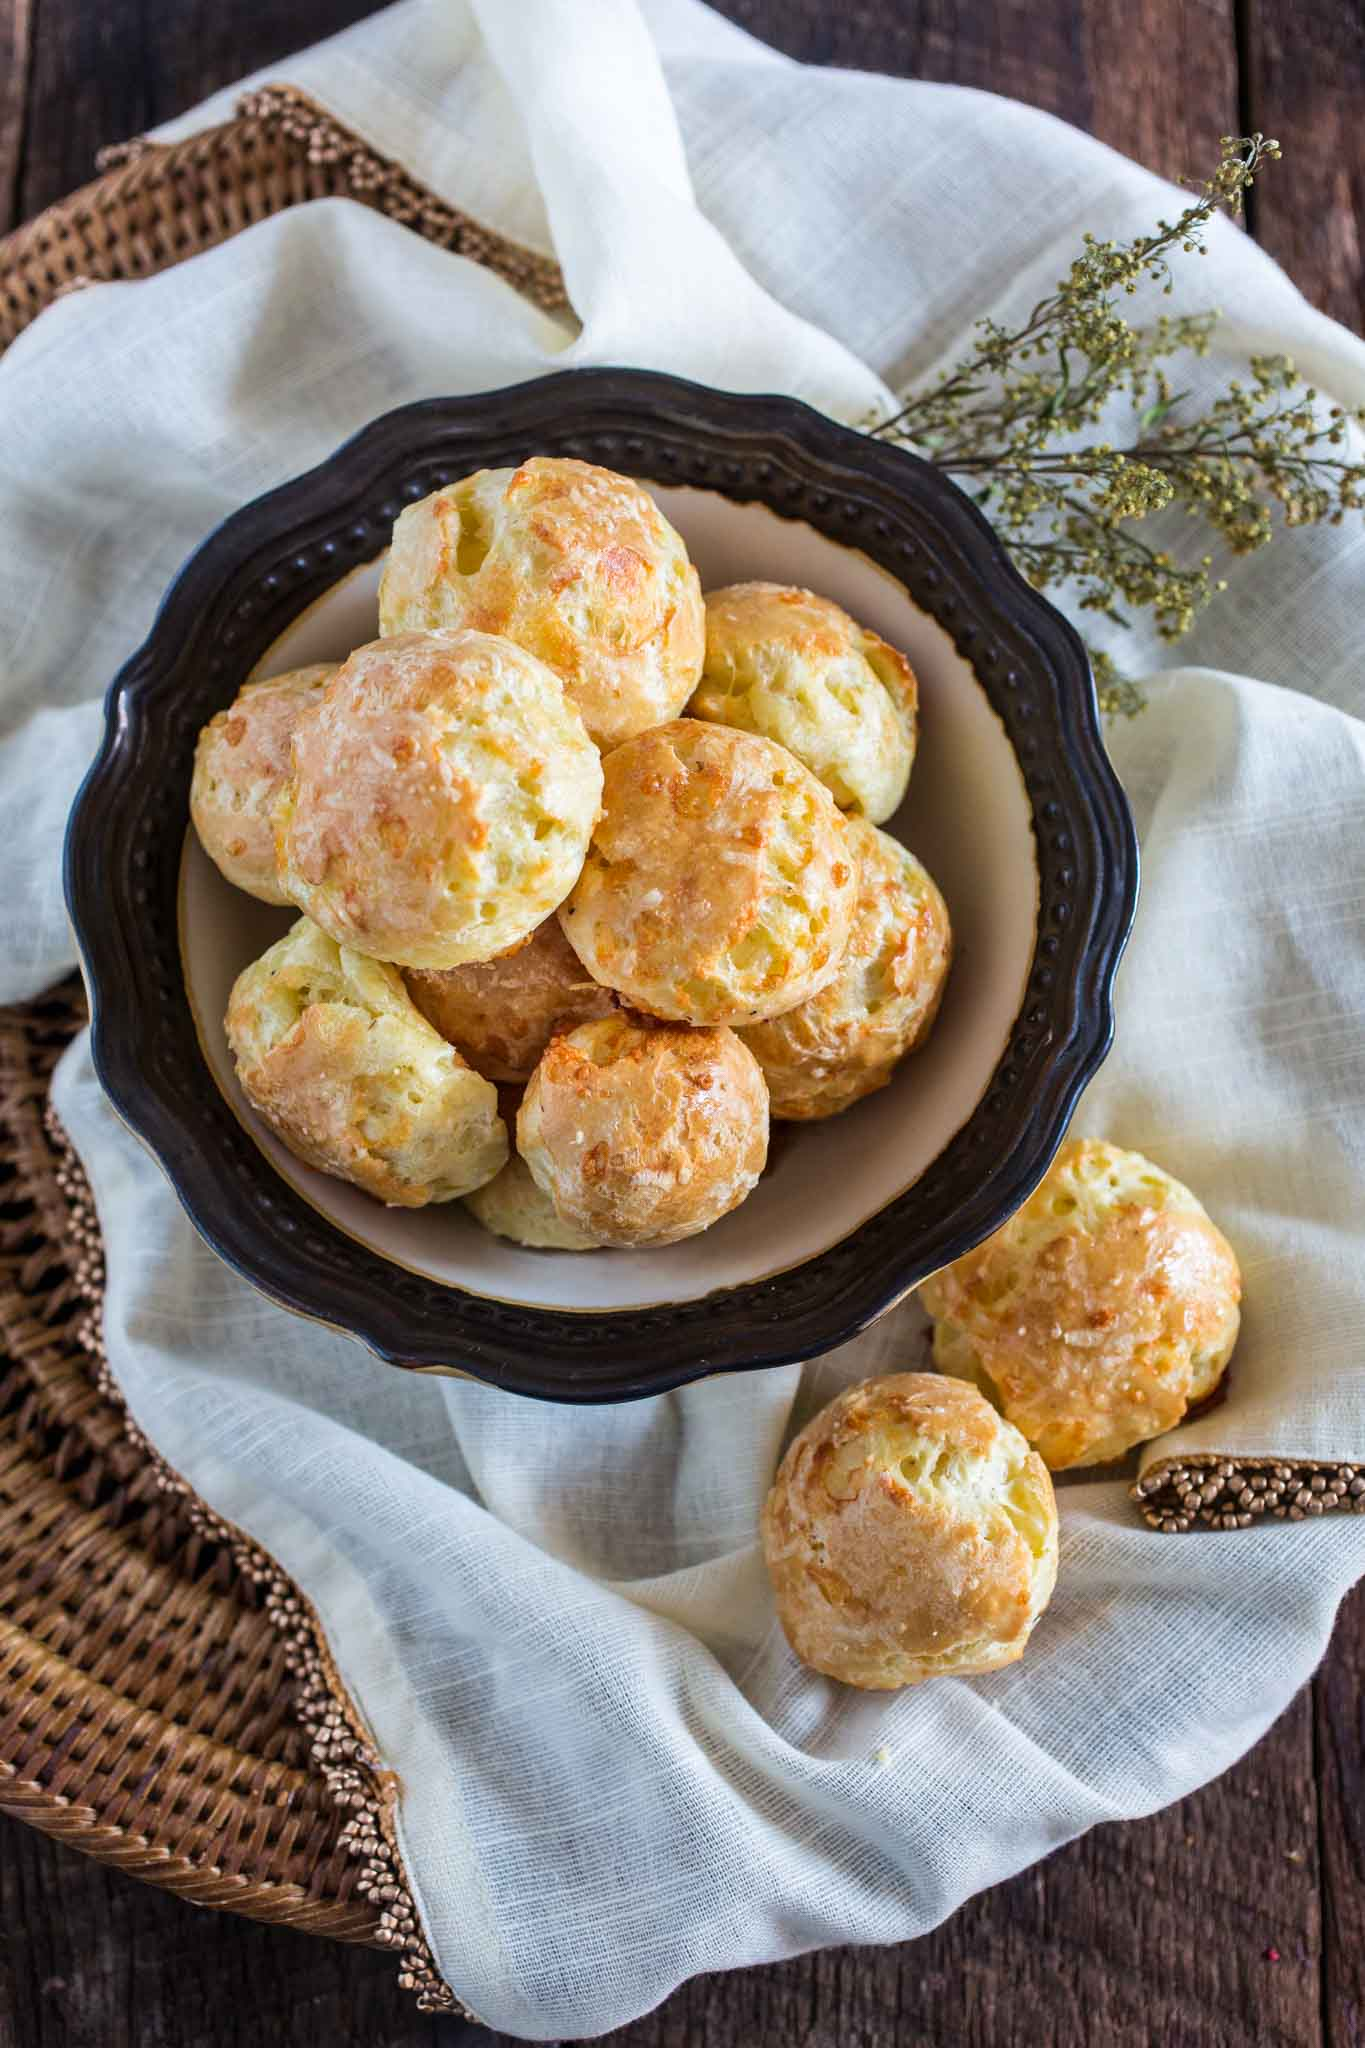 Gougeres (French Cheese Puffs) | www.oliviascuisine.com | A delicate savory hors d'oeuvre made with Gruyere cheese.